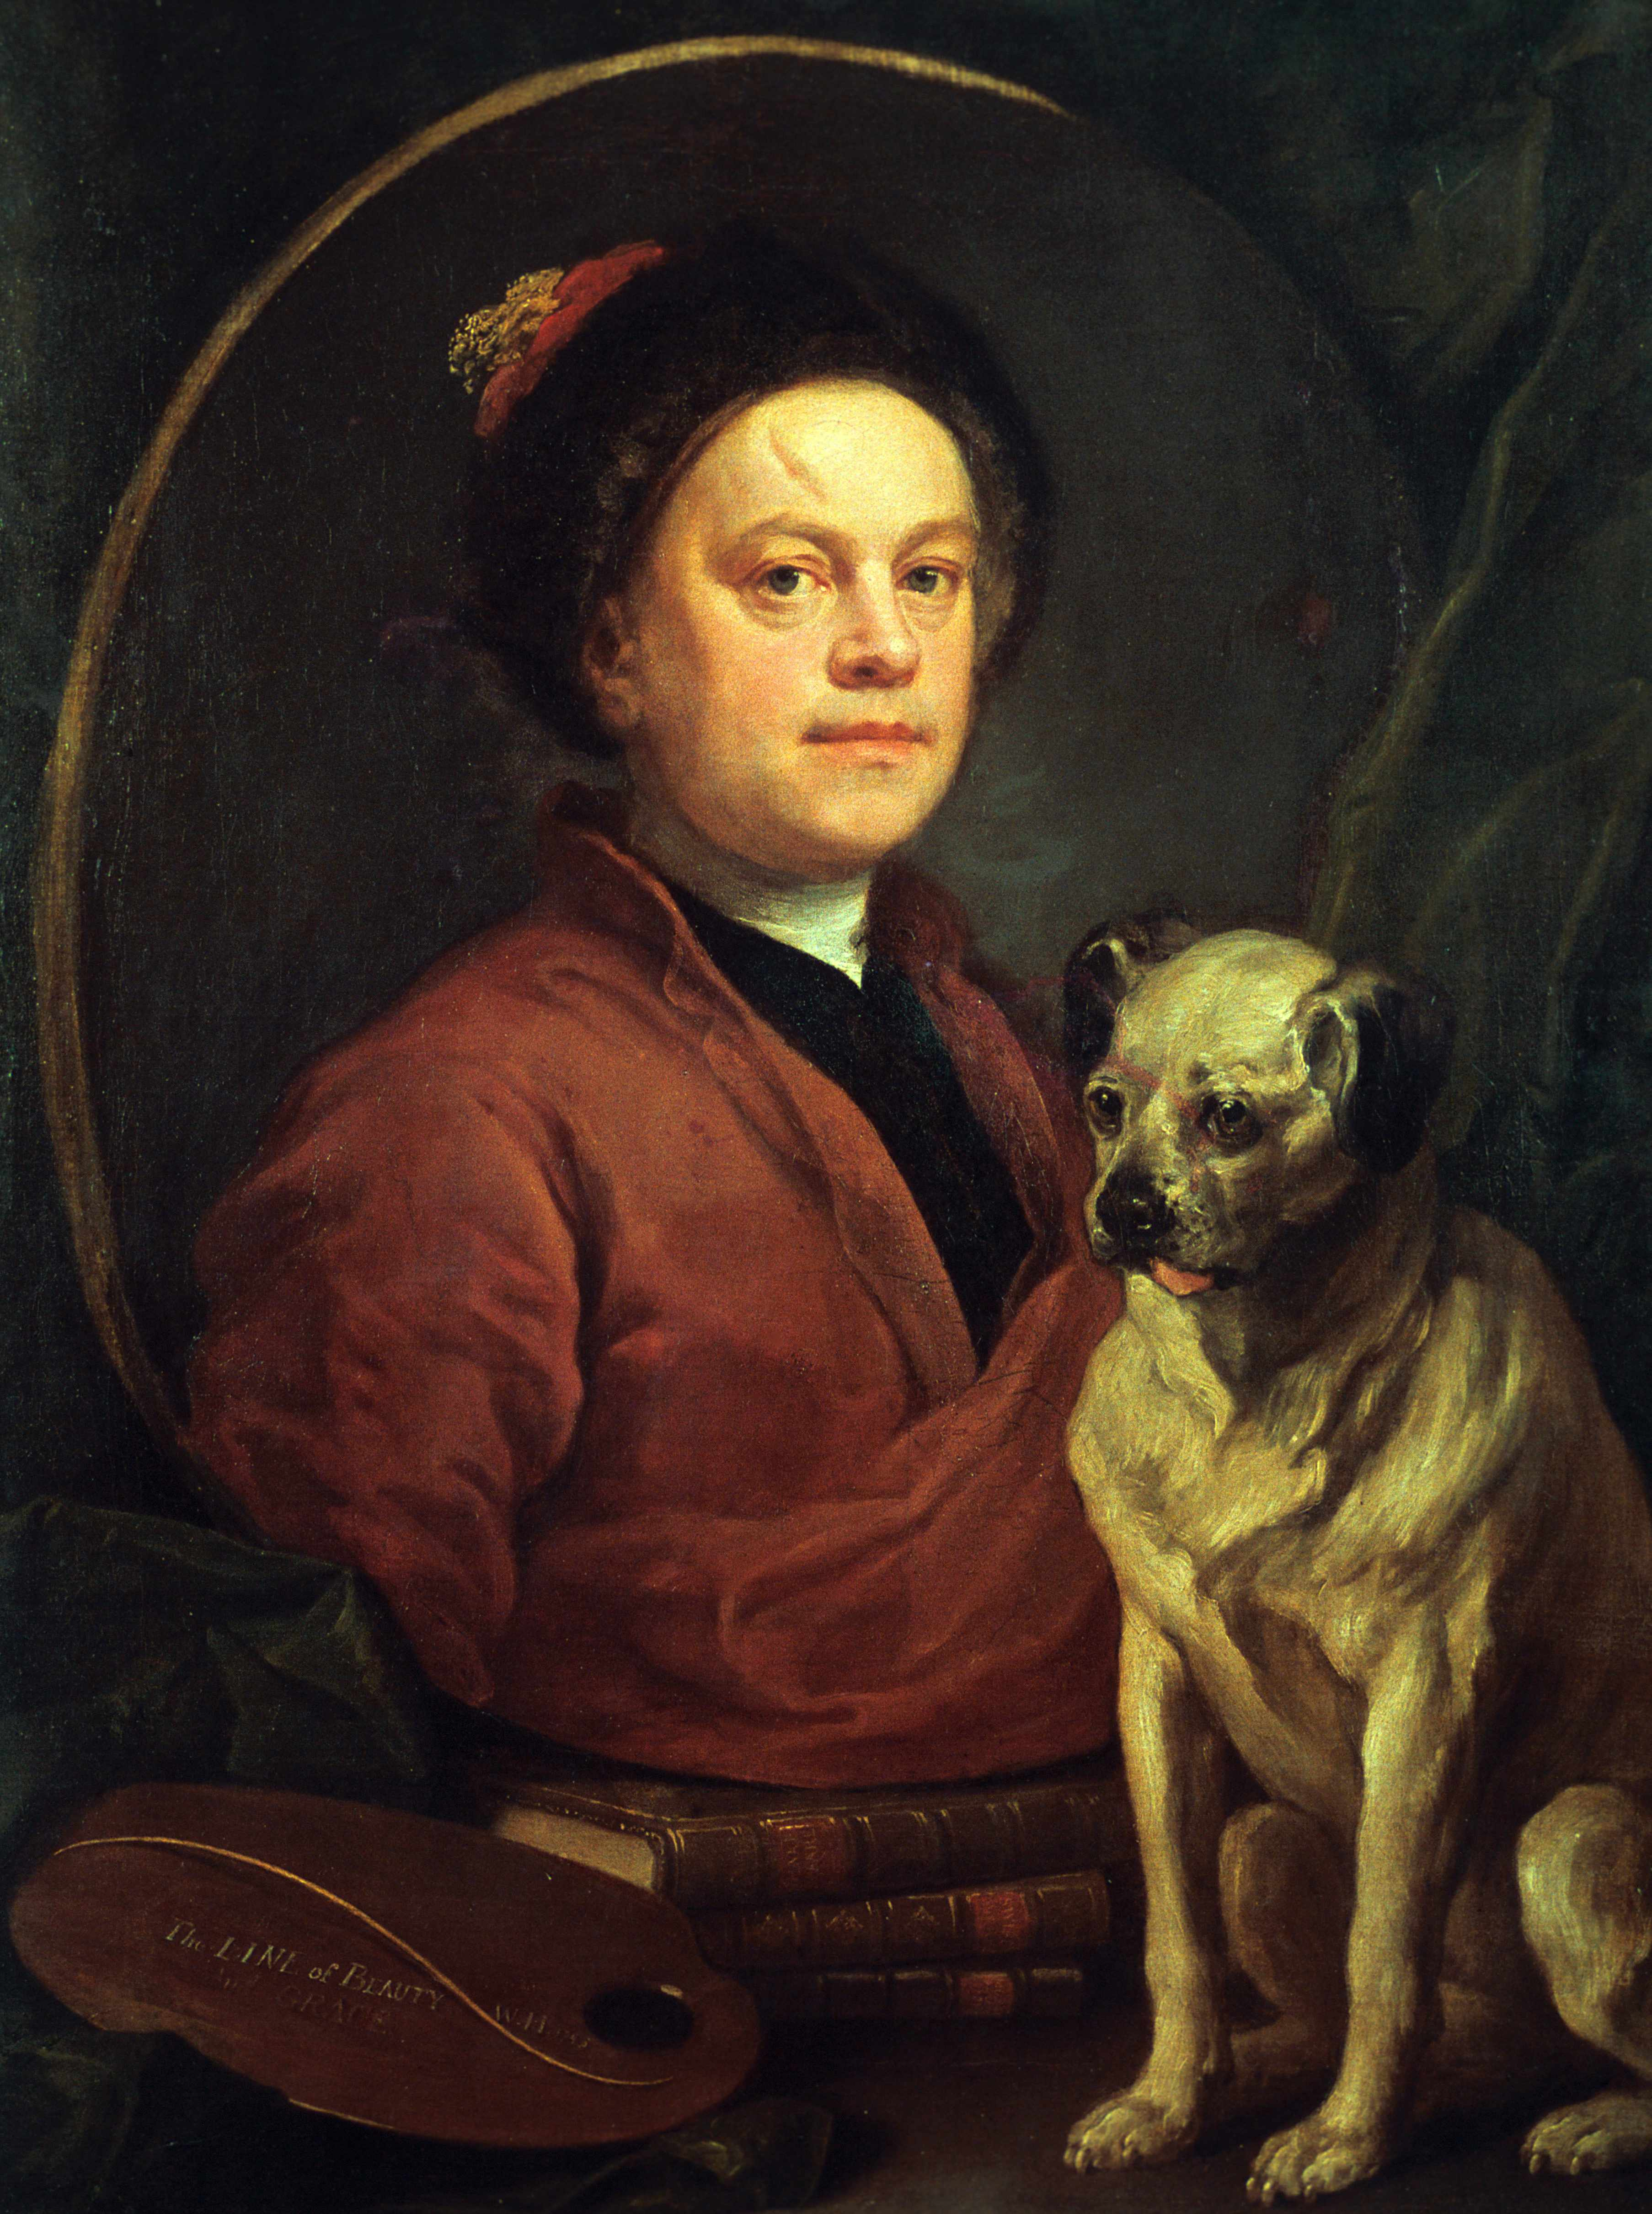 A portrait of William Hogarth, whom Simon Jones admires for possessing an extraordinary eye for pictorial detail and social nuance. (Photo by Art Media/Print Collector/Getty Images)